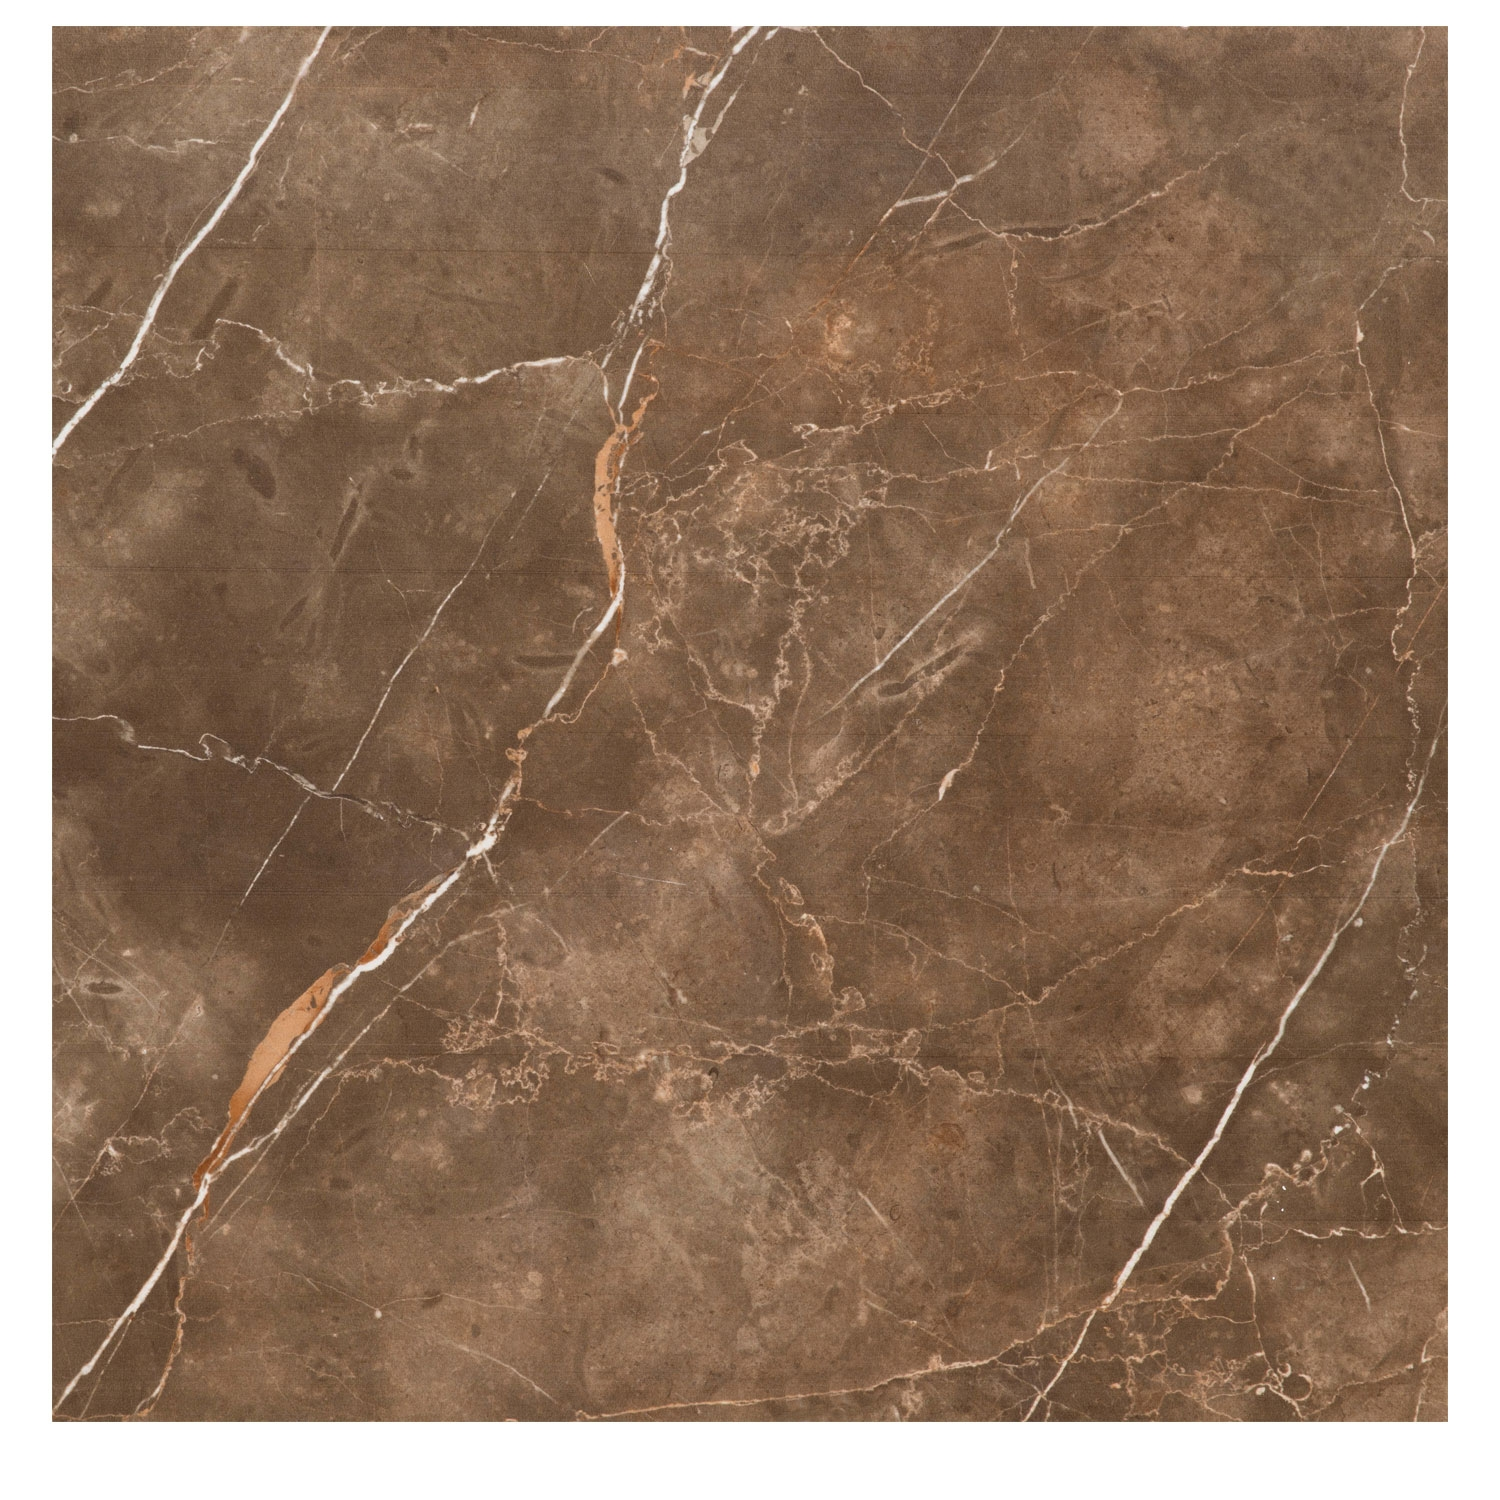 RAK Atlantis Marble Porcelain Polished Tile - 595mm H x 595mm W - Brown (Box of 4)